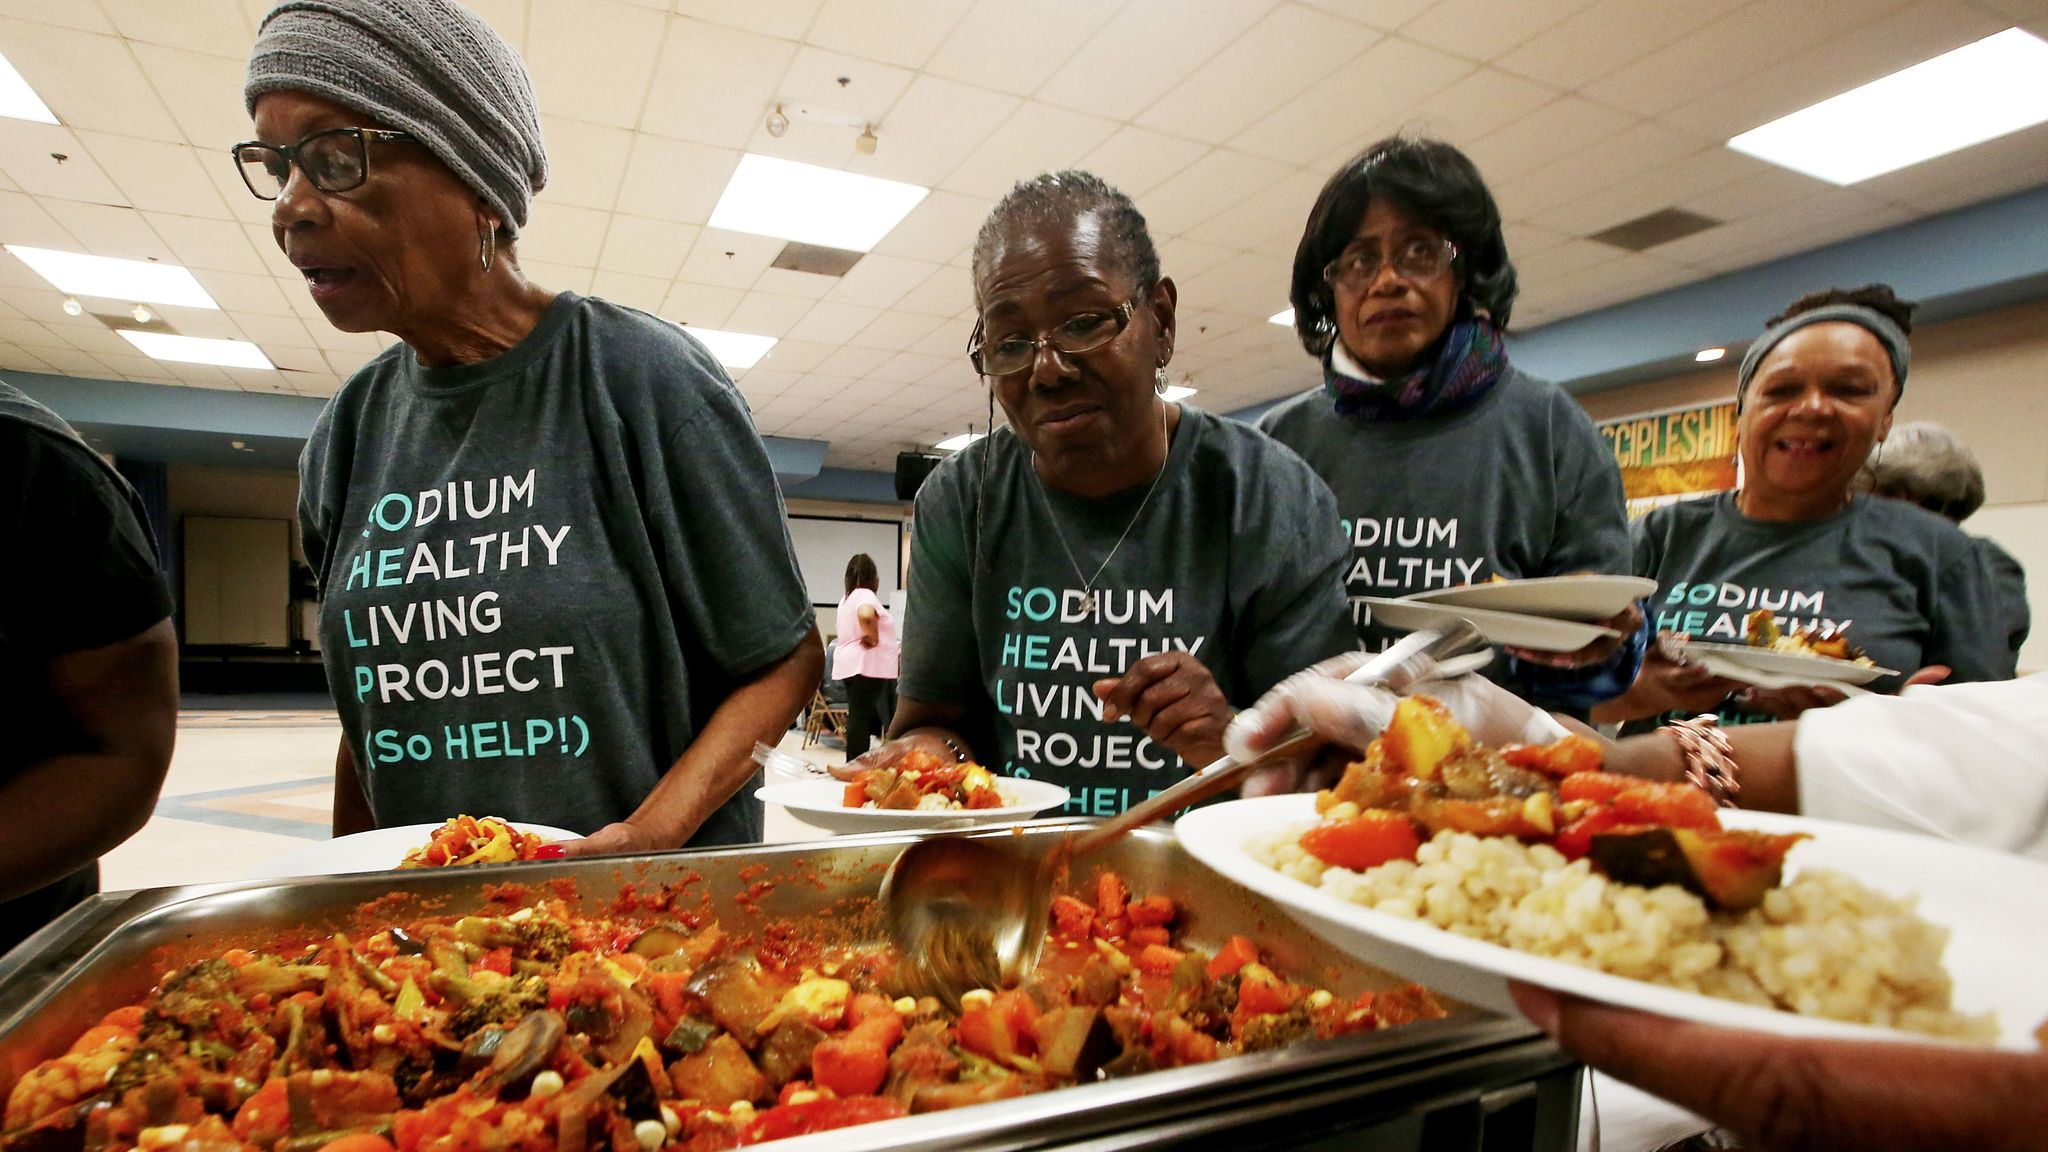 Participants in the Sodium Healthy Living Project line up for a low-sodium, vegetarian dinner at Holman Methodist Church in Los Angeles.